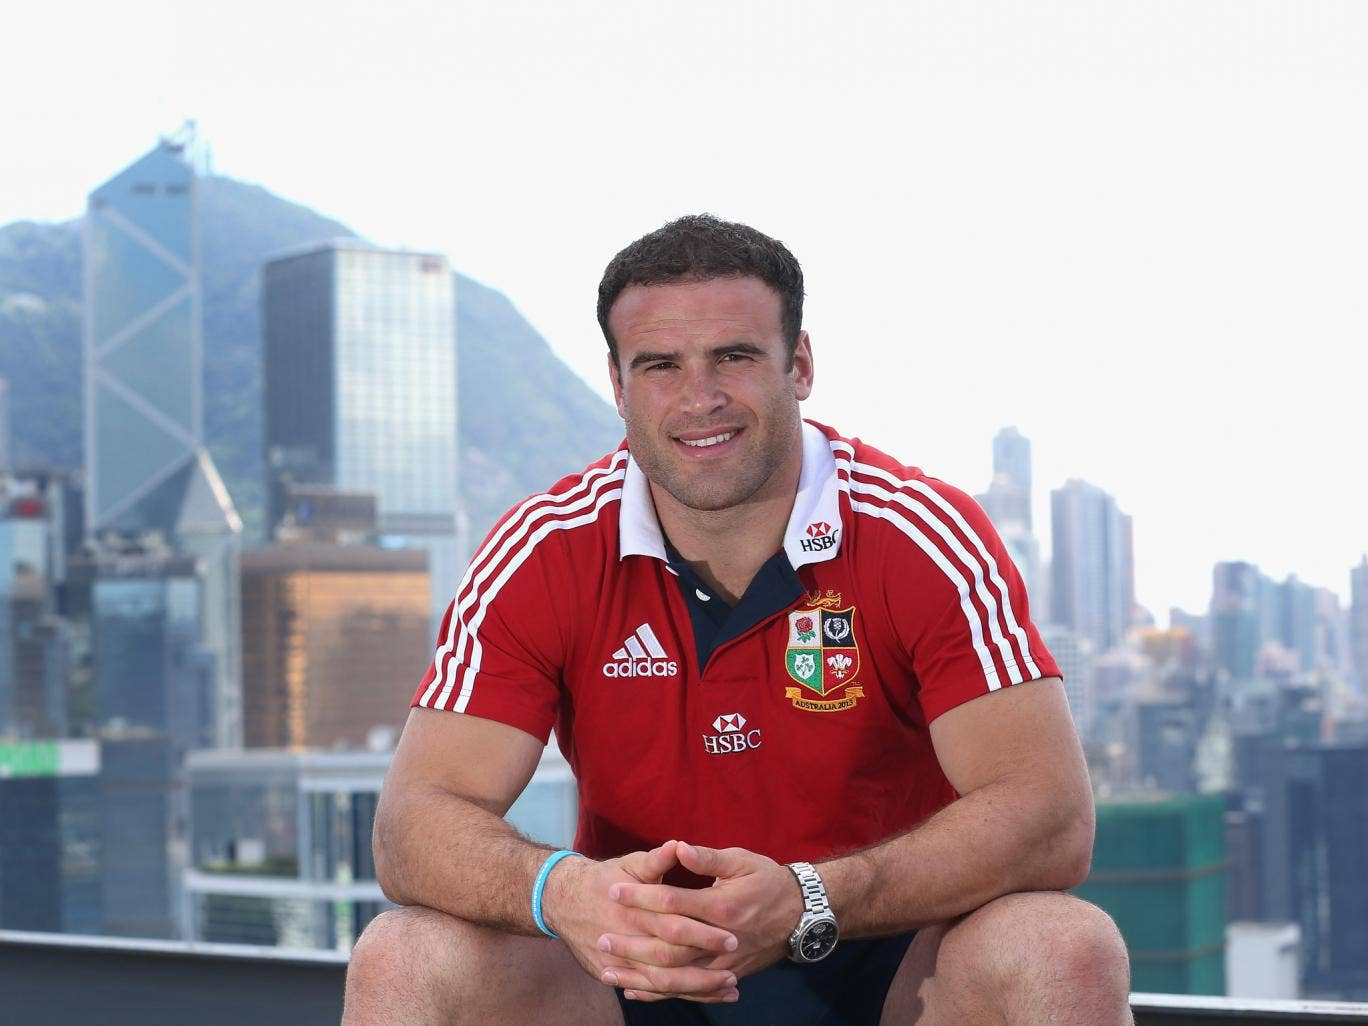 Jamie Roberts, the Lions centre, poses on top of the Grand Hyatt hotel after the British and Lions media session on May 31, 2013 in Hong Kong